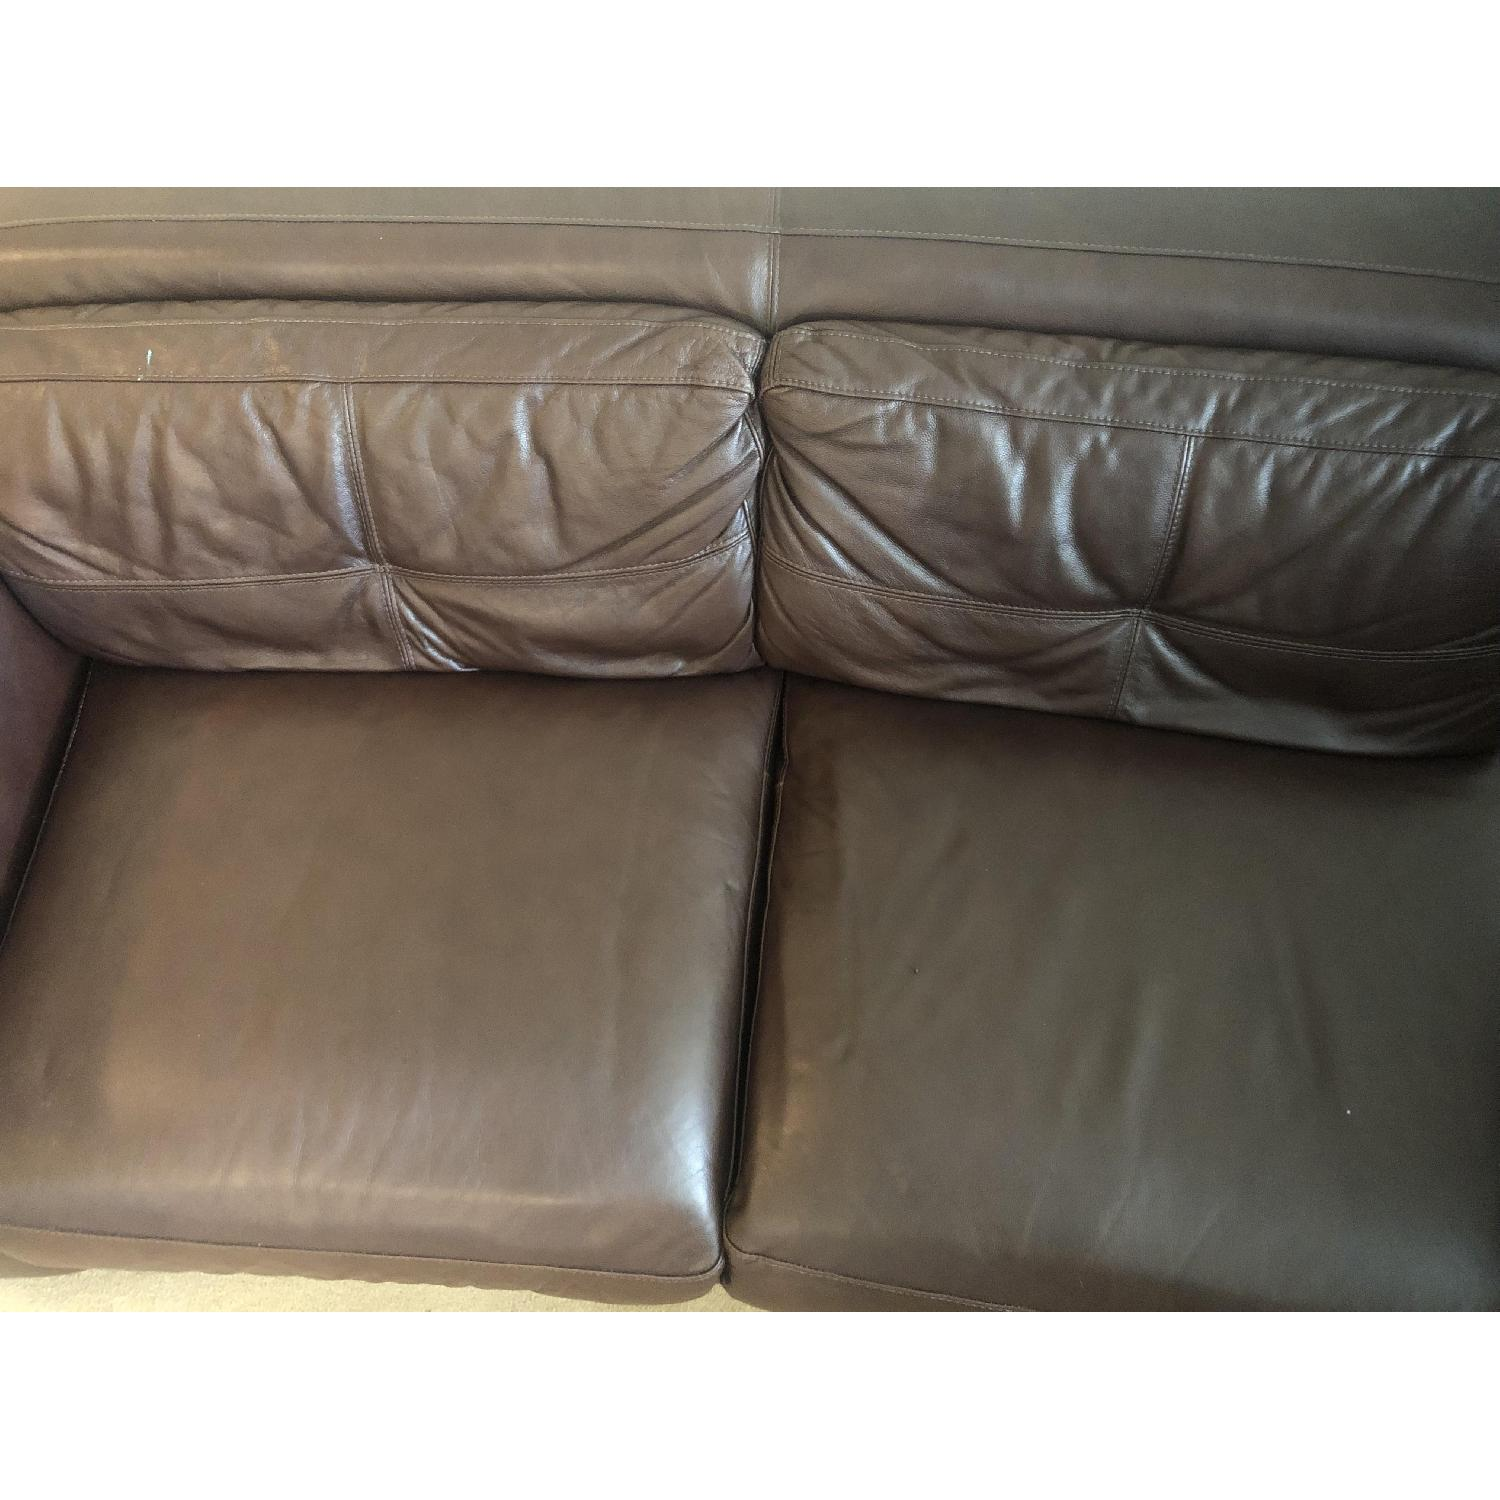 Raymour & Flanigan Austin 3 Piece Leather Sectional Sofa - image-6